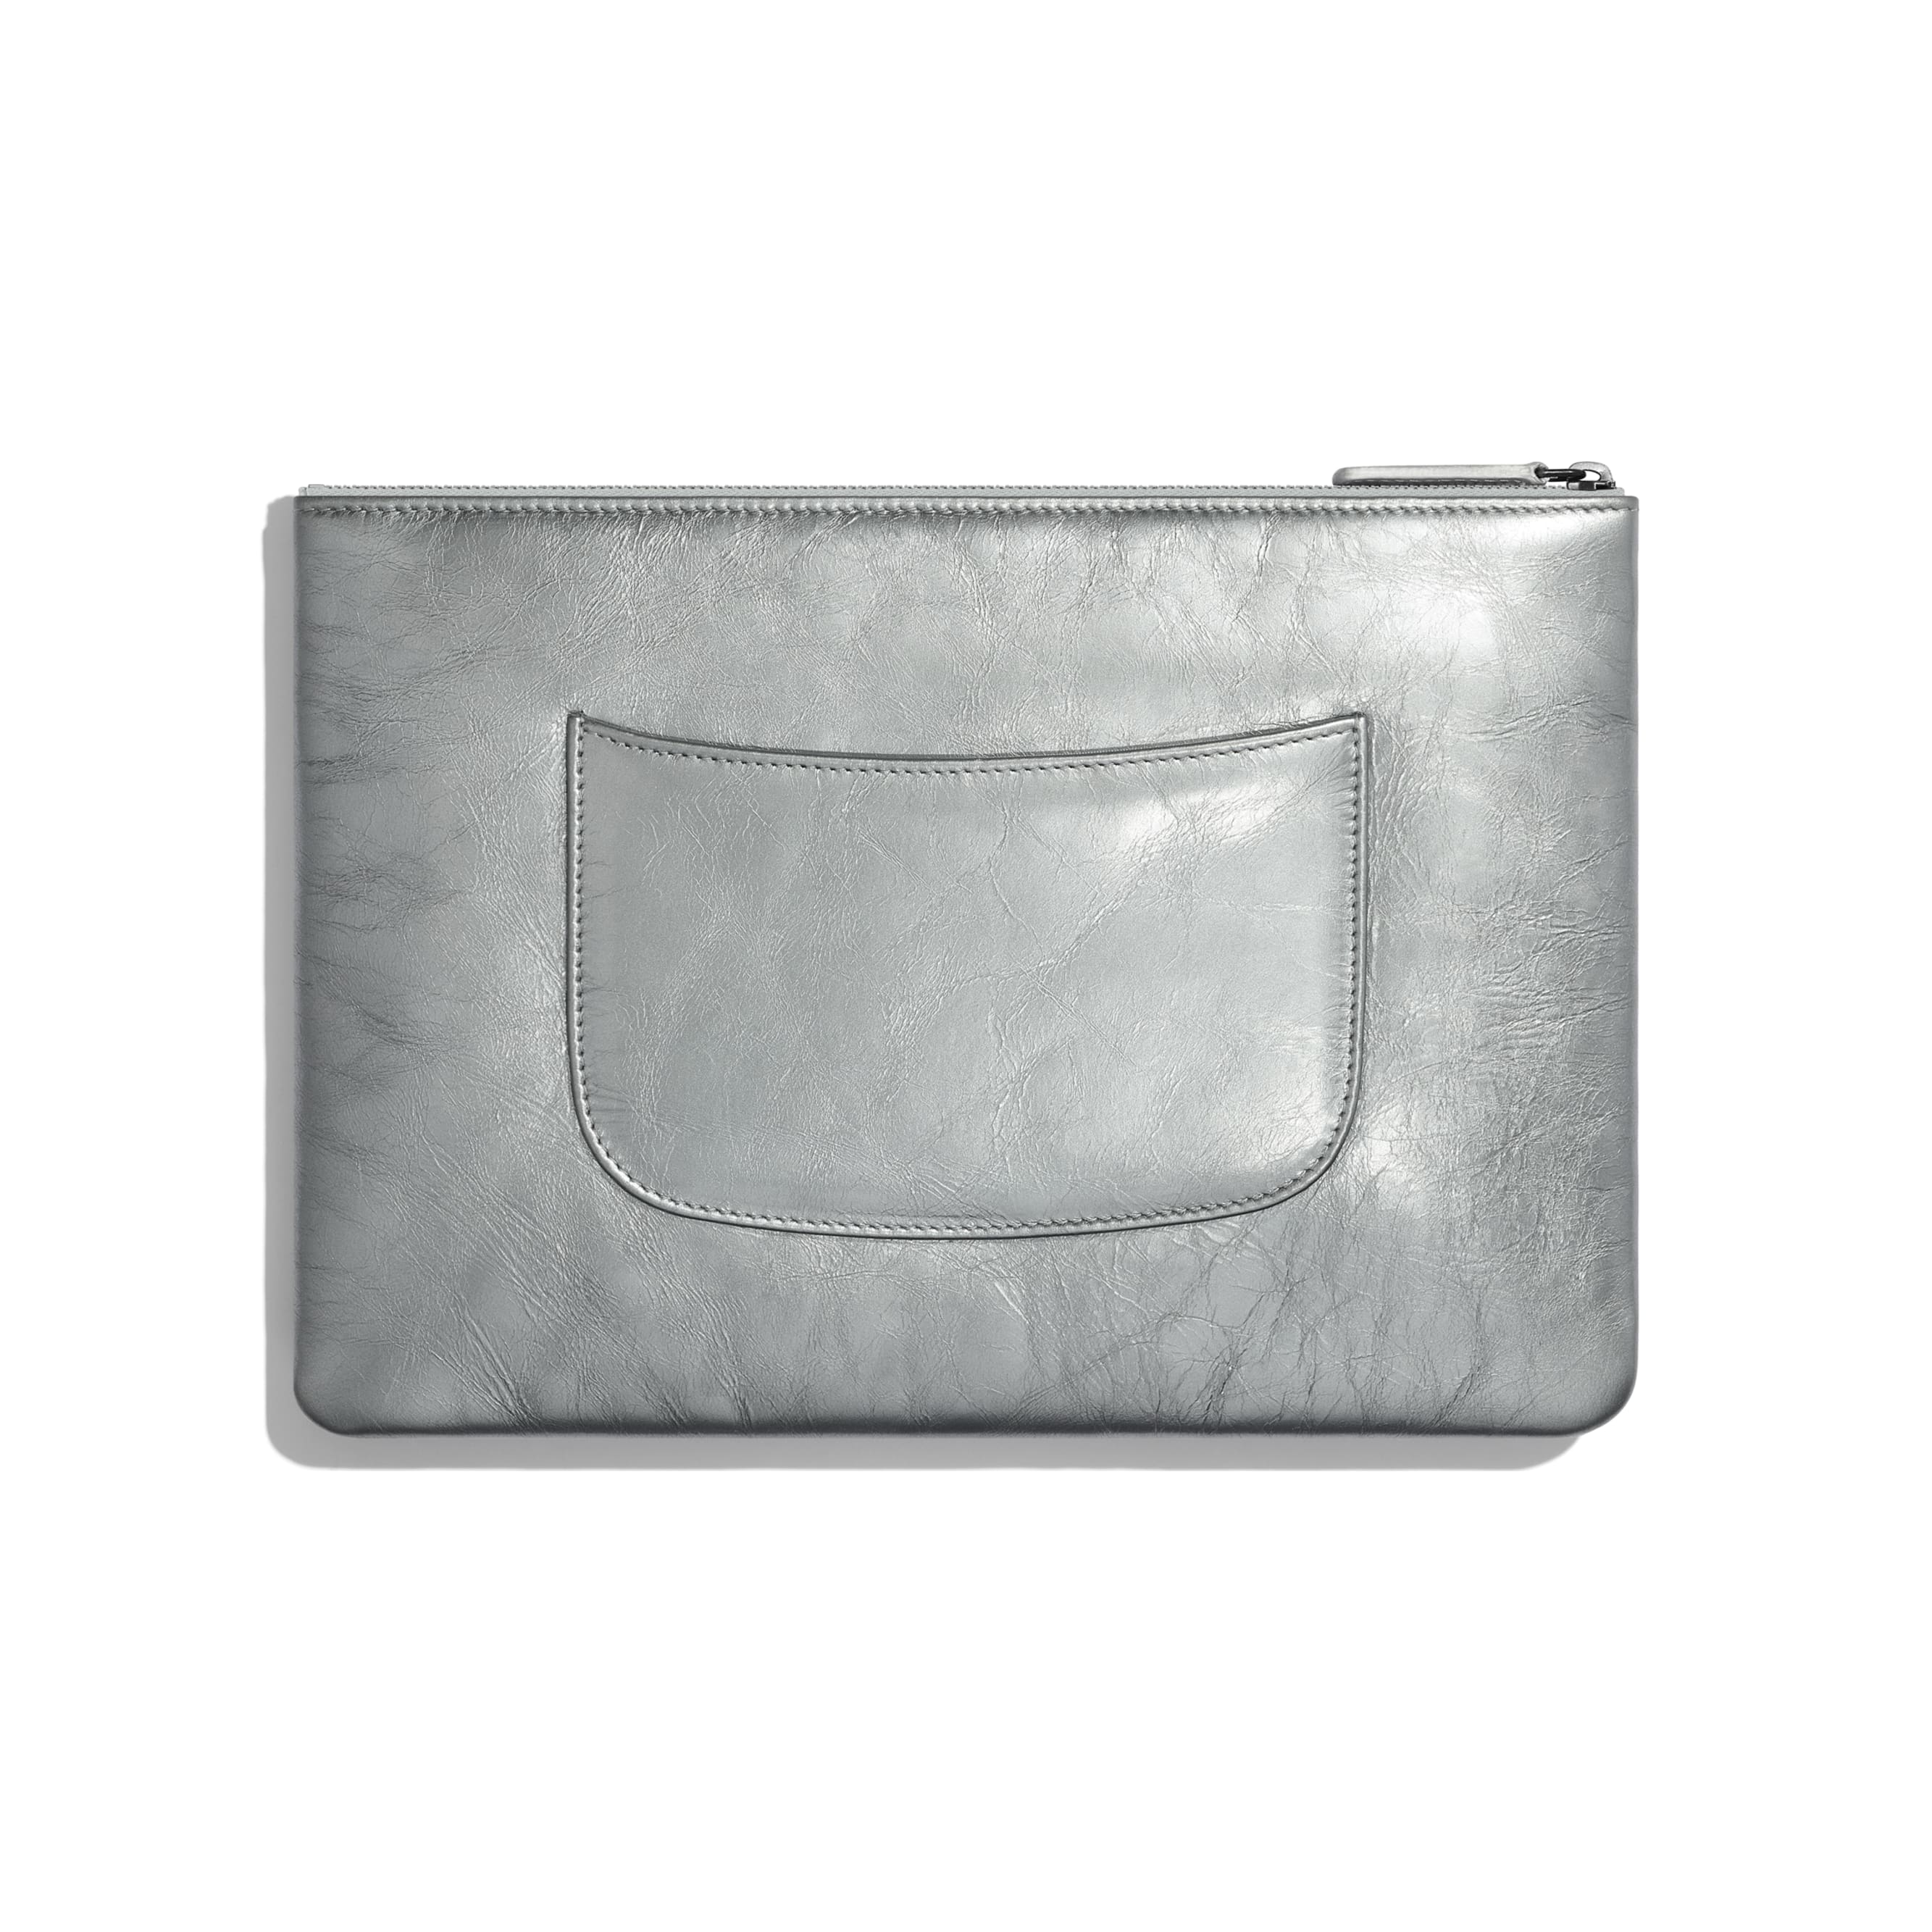 Pouch - Silver - Metallic Crumpled Calfksin, Gold-Tone, Silver-Tone & Ruthenium-Finish Metal - Alternative view - see standard sized version